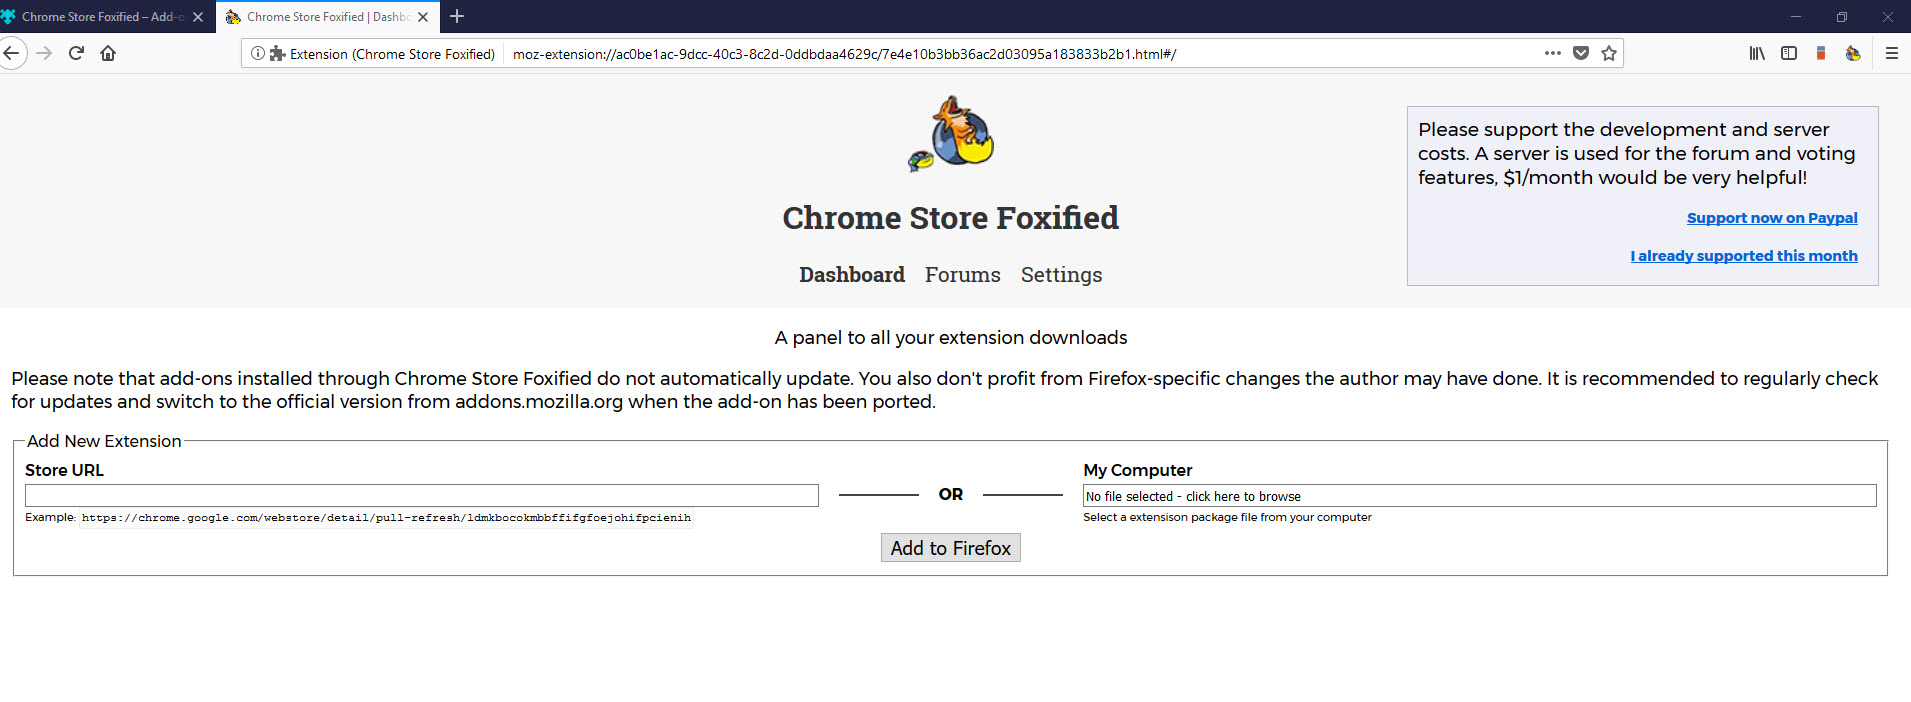 Chrome Store Foxified Dashboard